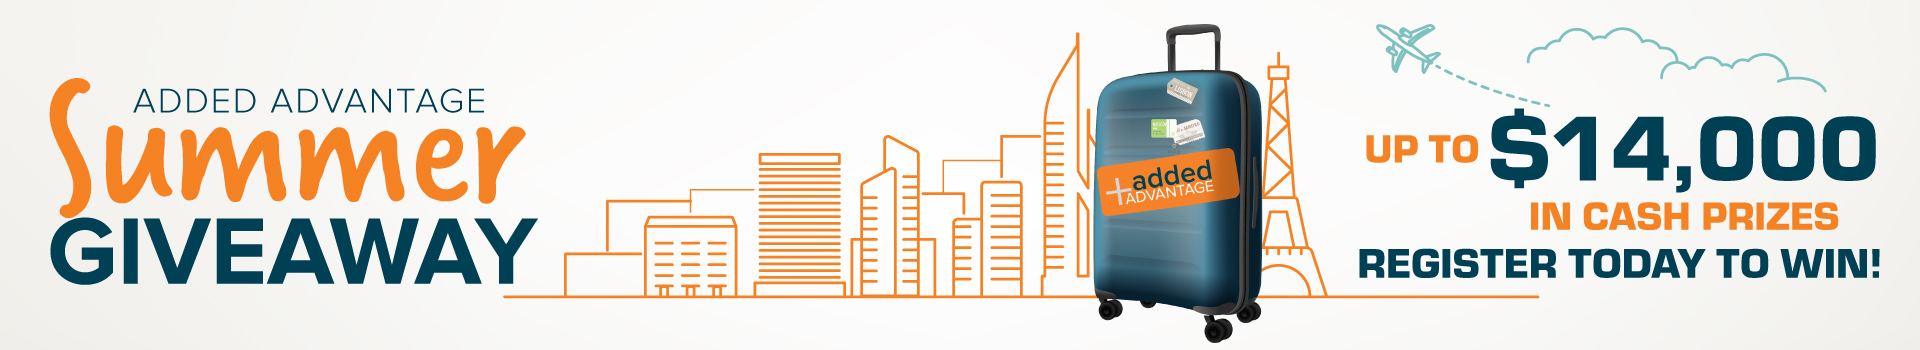 """Light gray banner with a stylized cityscape and a blue roller suitcase. Text reads """"Added Advantage Summer Giveaway. Up to $14,000 in Cash Prizes. Register Today to Win!"""""""